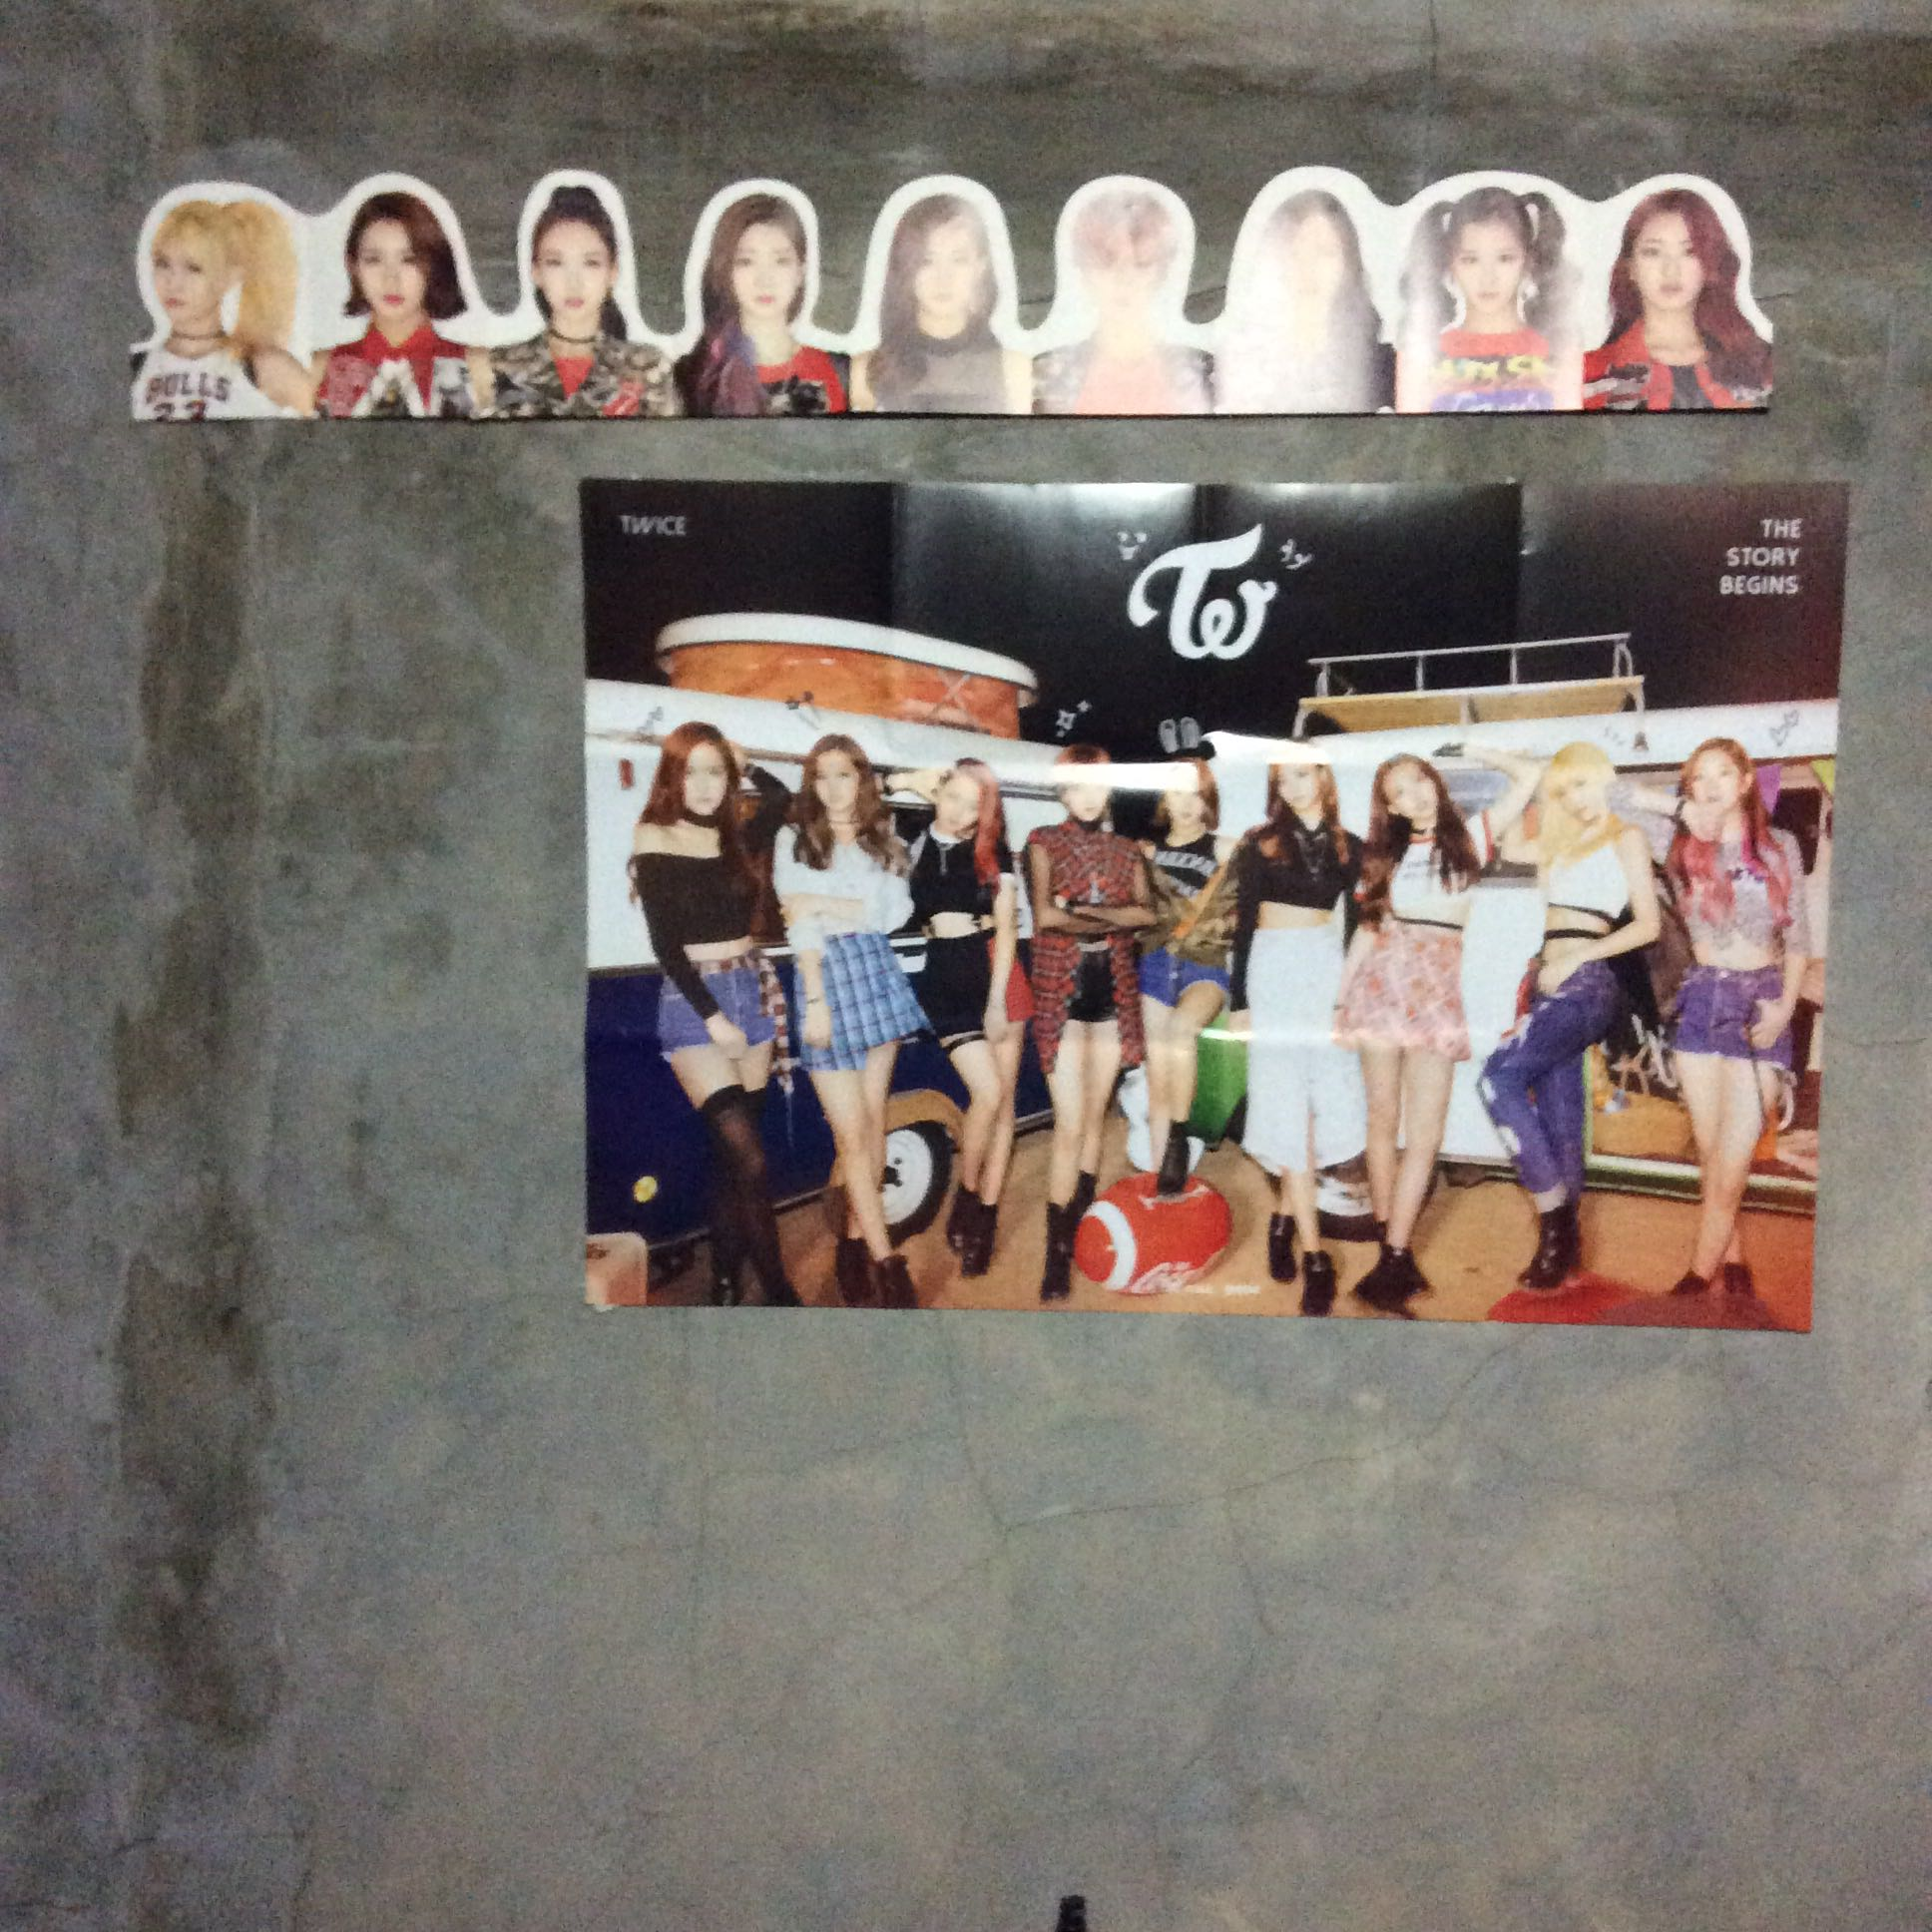 TWICE - The Story Begins (1st Mini Album) CD+36p Photobook+Garland+1Unit  Card+1Red Card+1Pink Card+Double Side Extra Photocards Set